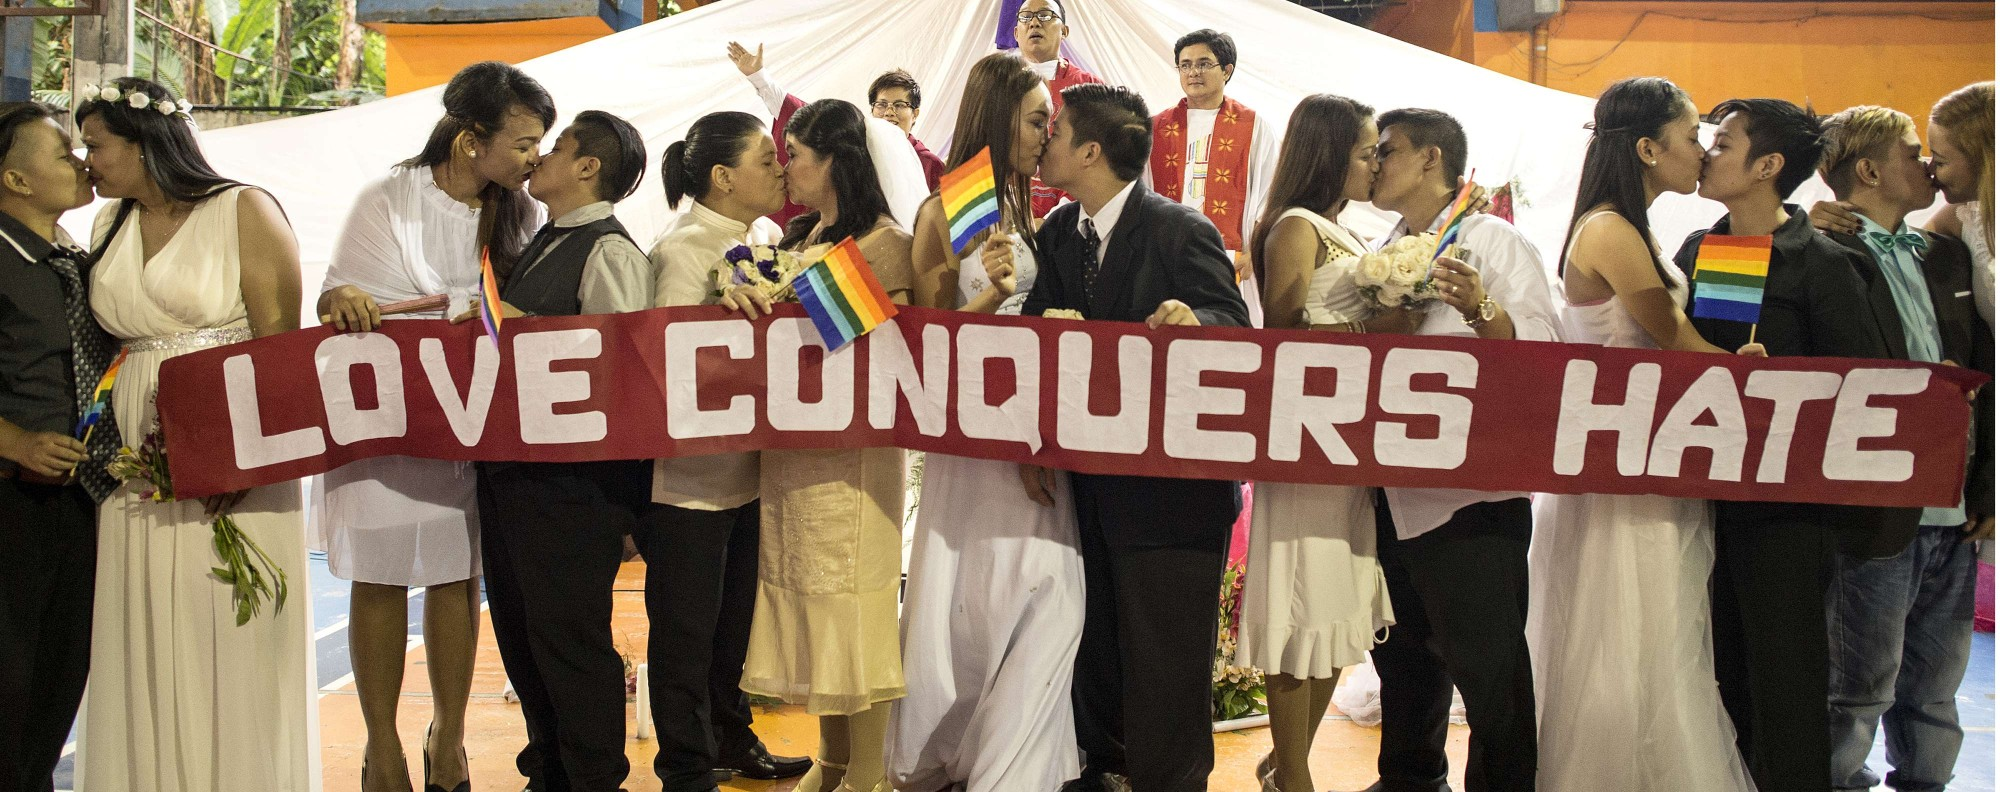 Homosexuality in filipino culture